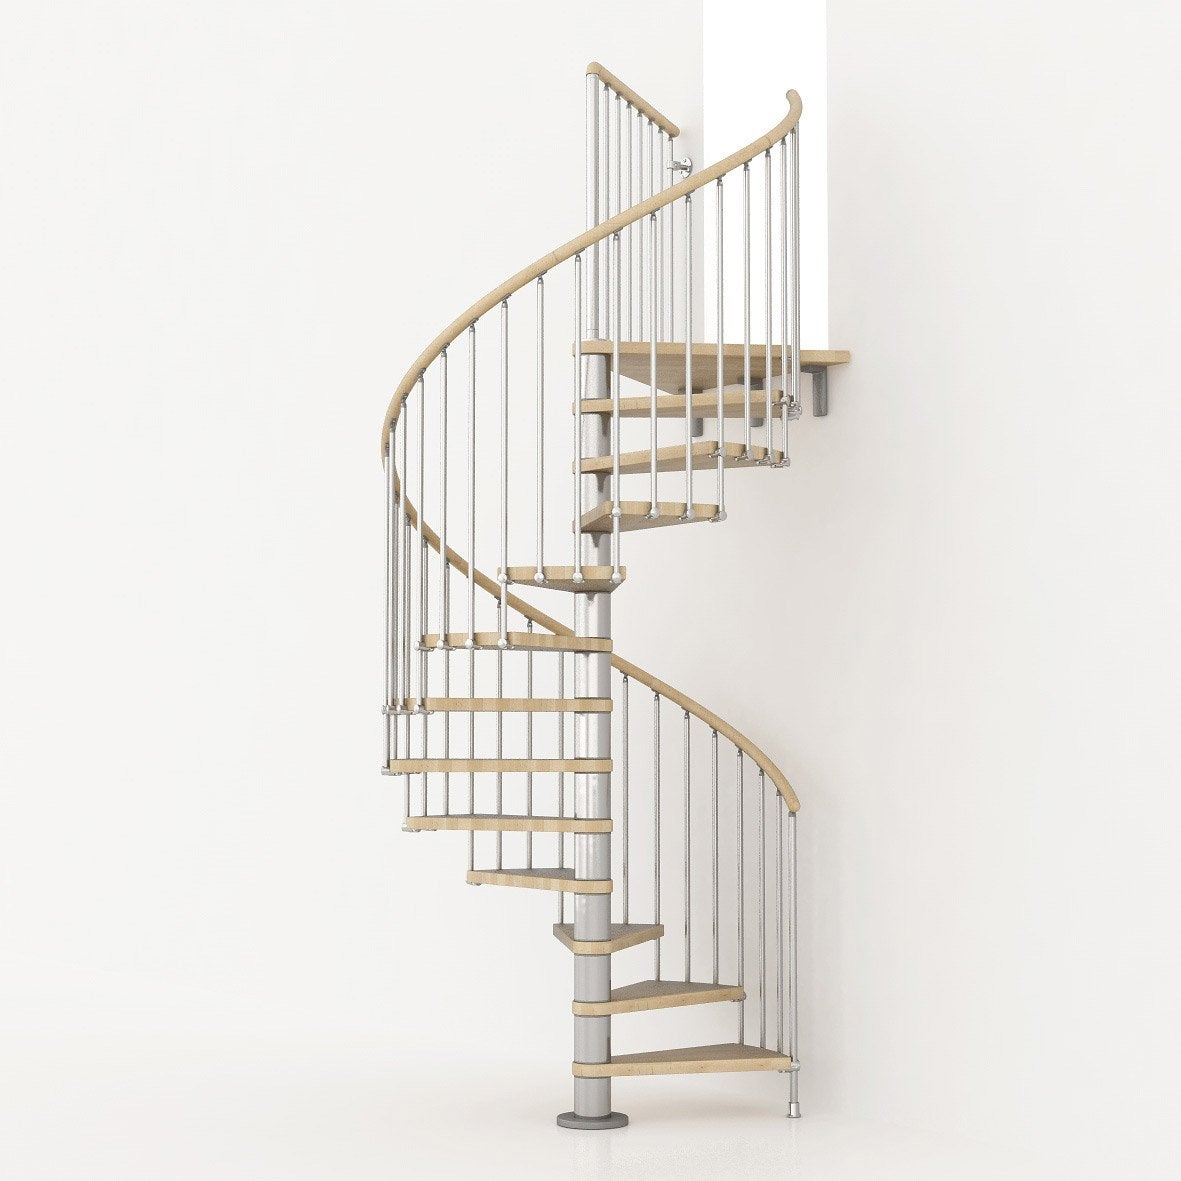 Escalier Bois Leroy Merlin : rond Ring, marches bois/ structure m?tal chrom? Leroy Merlin